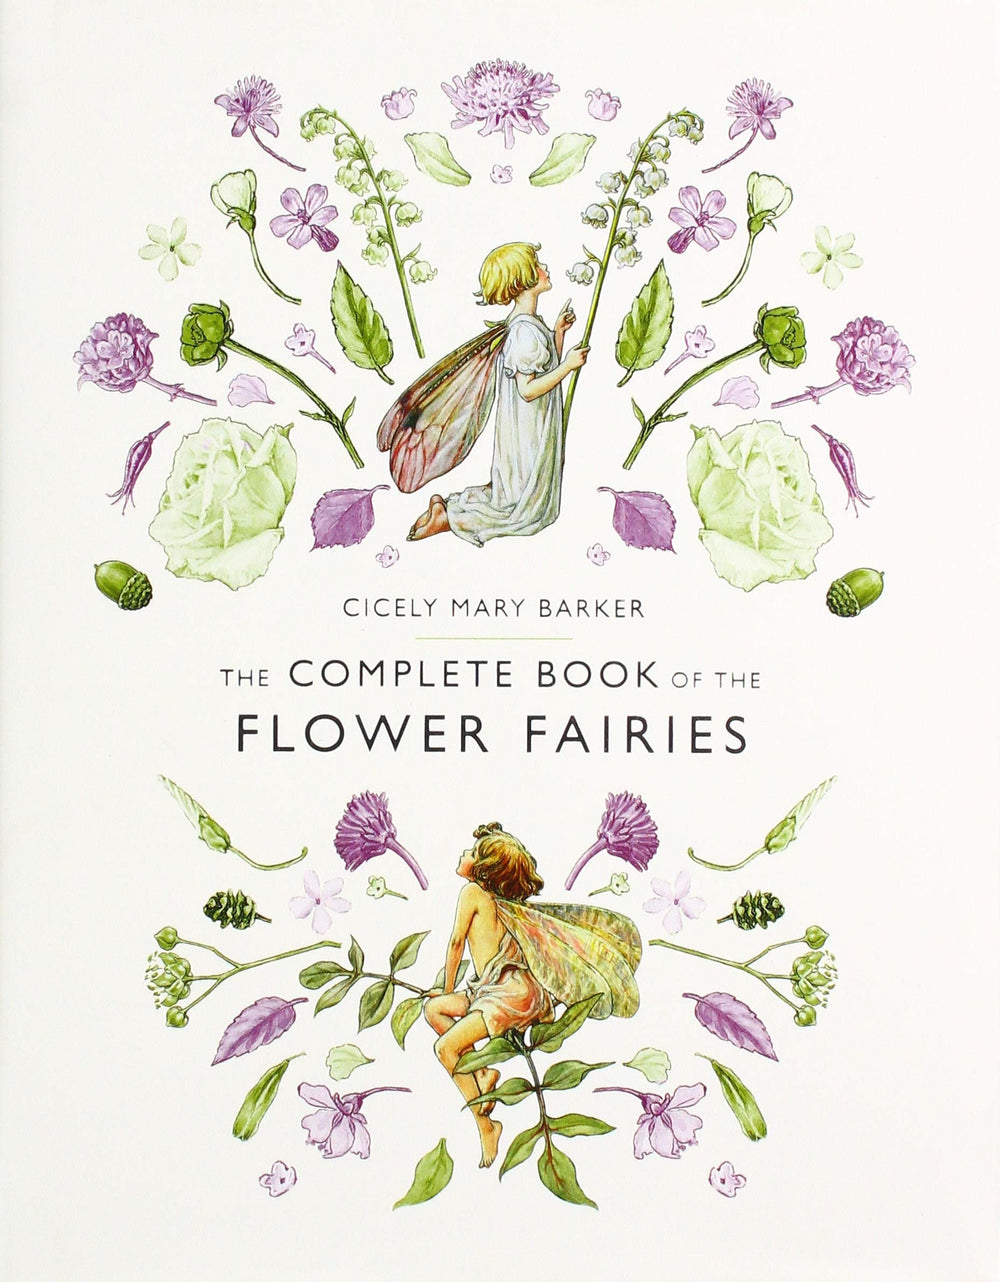 The Complete Book of Flower Faries